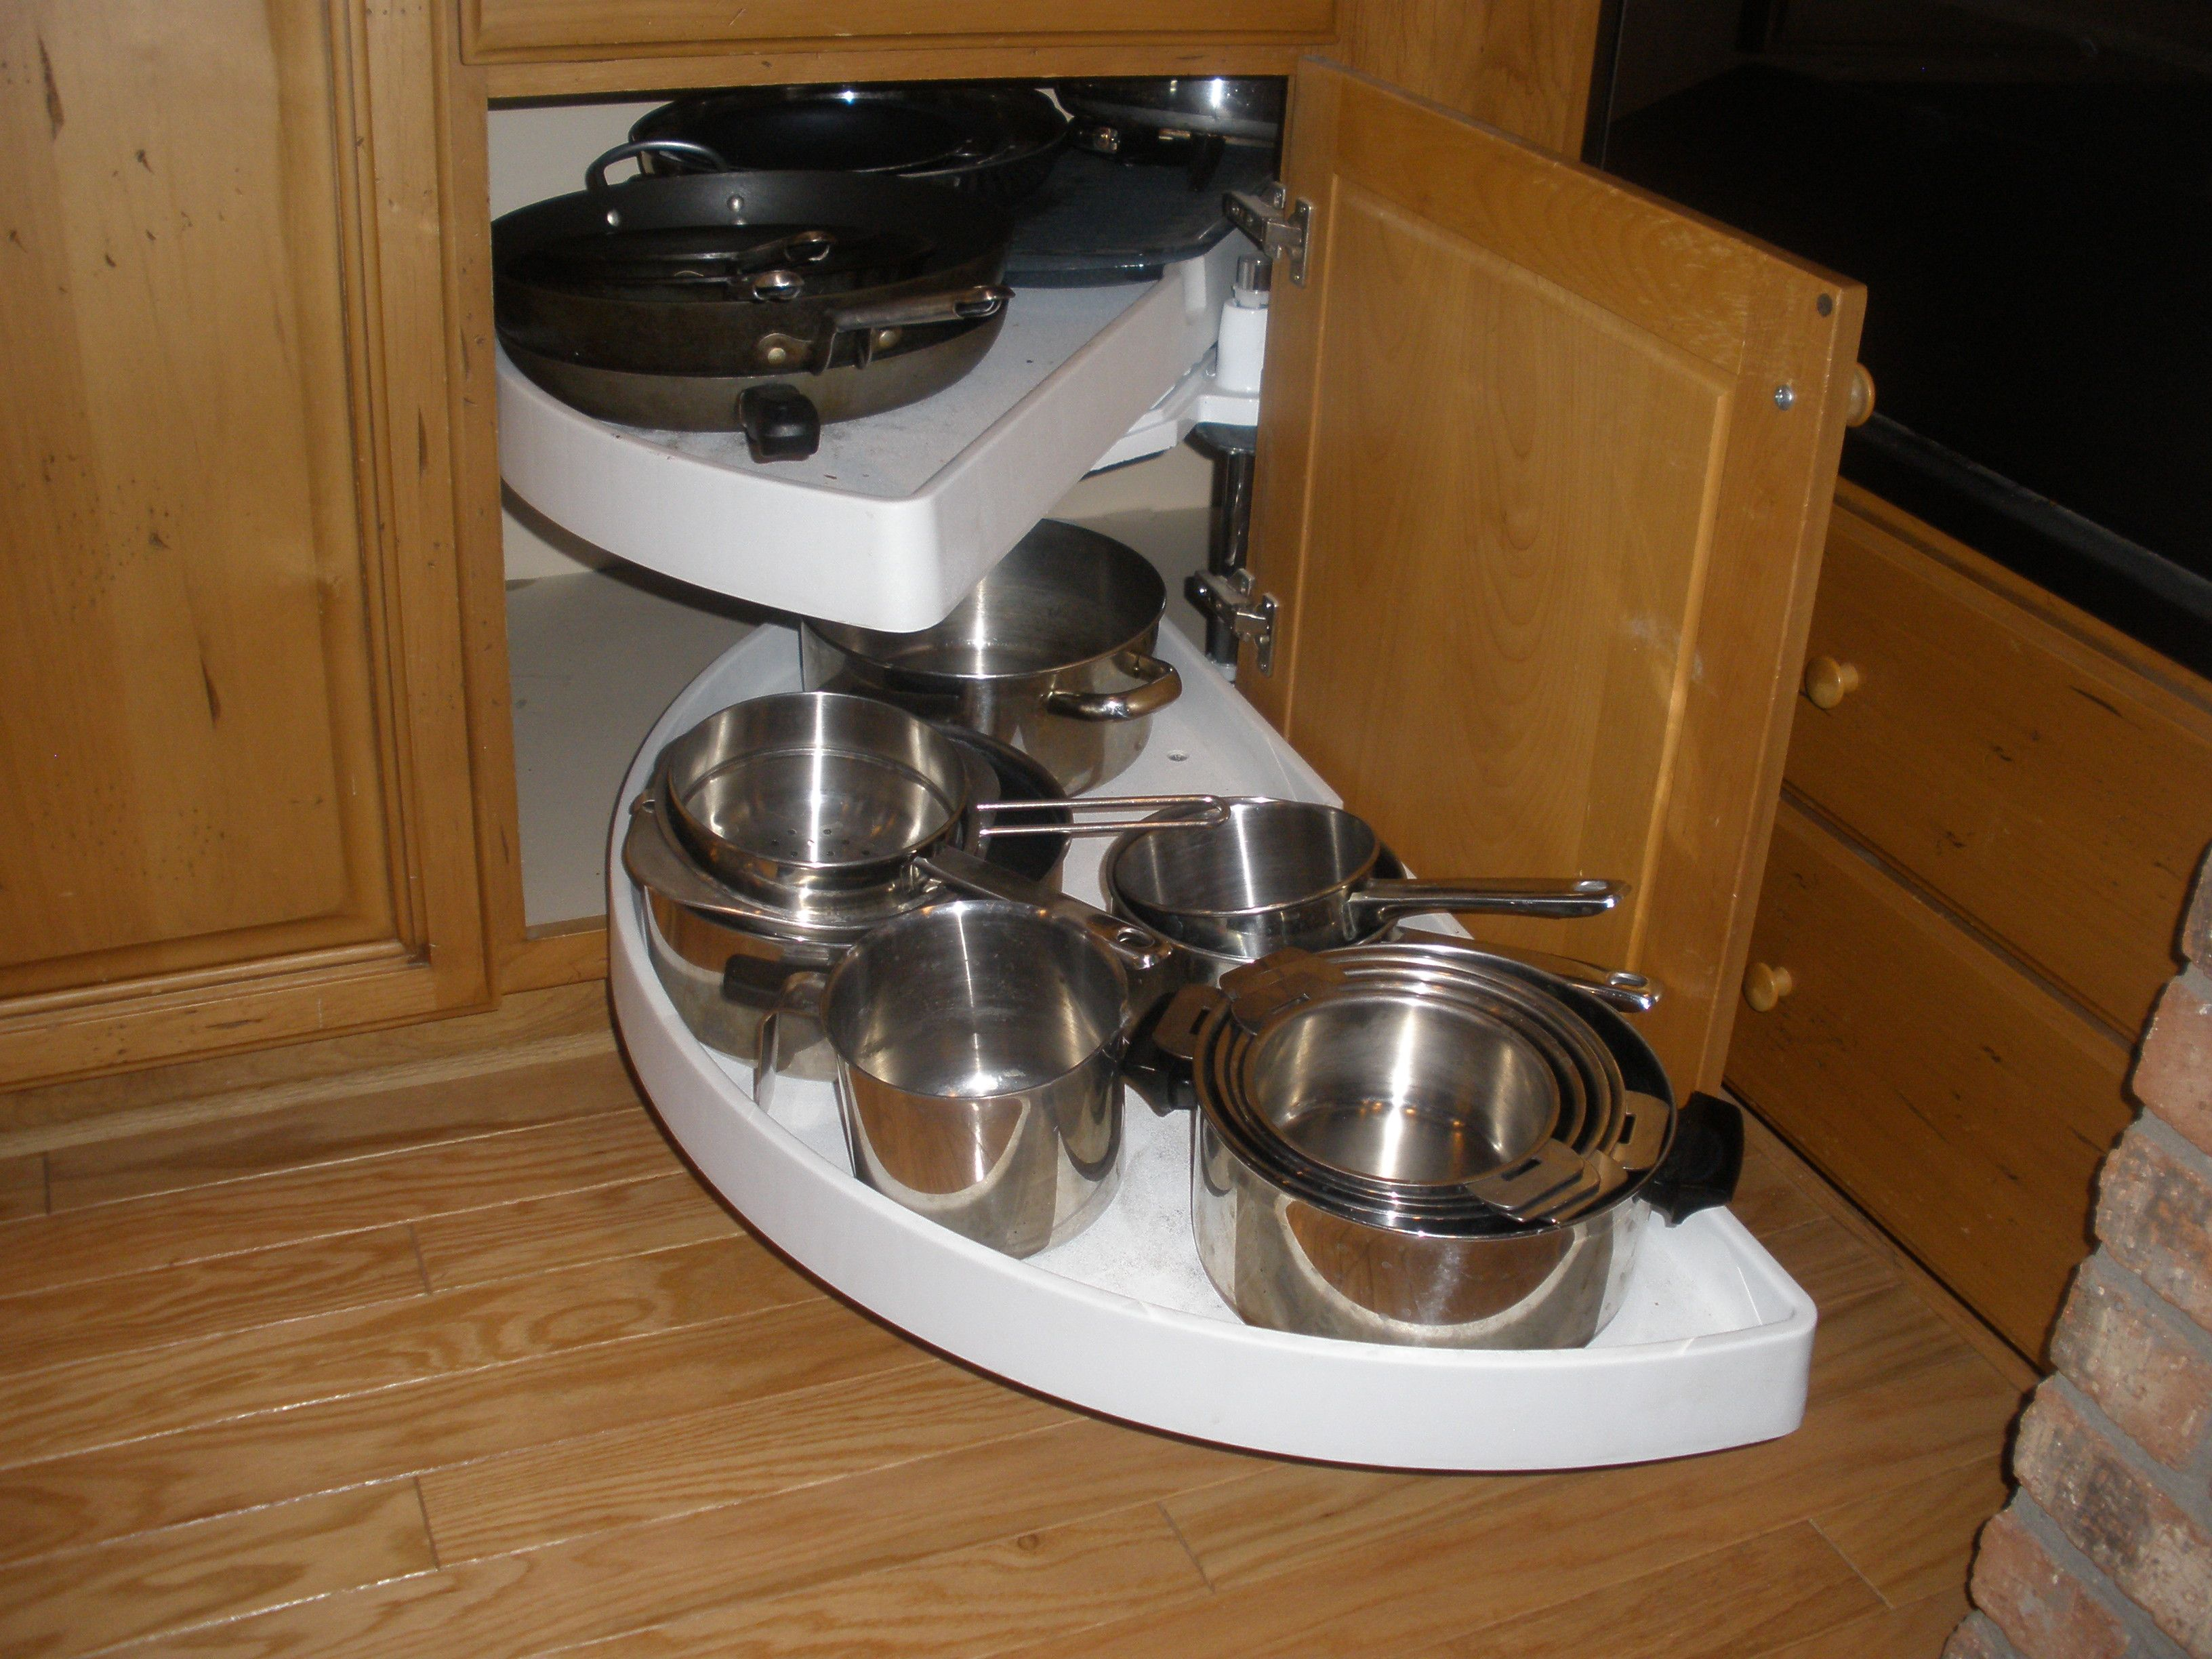 ways index for tools pots rack smart bans and cooking organizing how to organize home pans